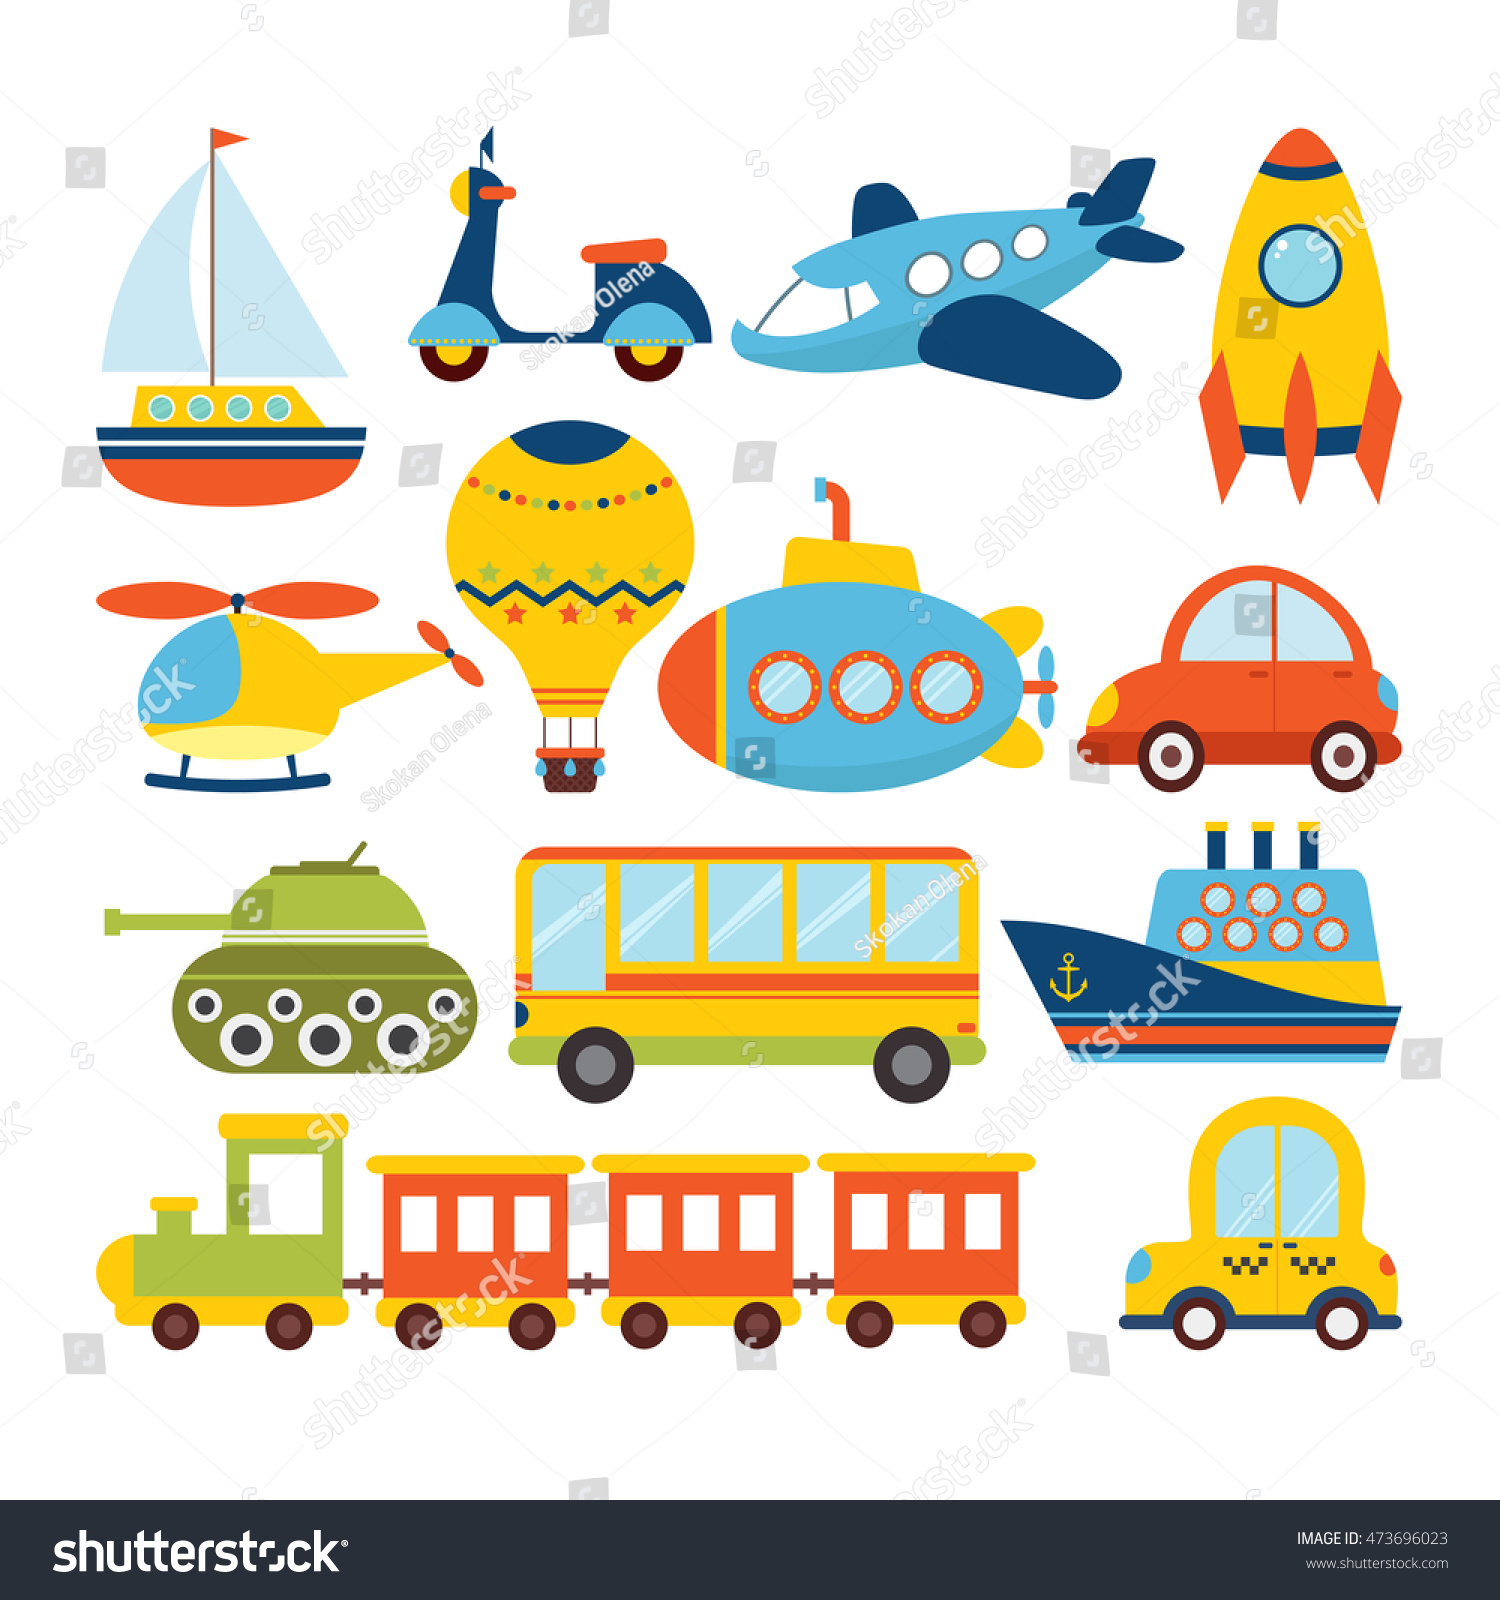 child helicopter toy with Set Cartoon Transport Transportation Theme Vector 473696023 on Watch likewise Sofl1201 besides Explore and learn helicopter furthermore Stock Photo Father His Son Play Rc Helicopter Toy Playing Image57280523 also Passenger Train 60197.